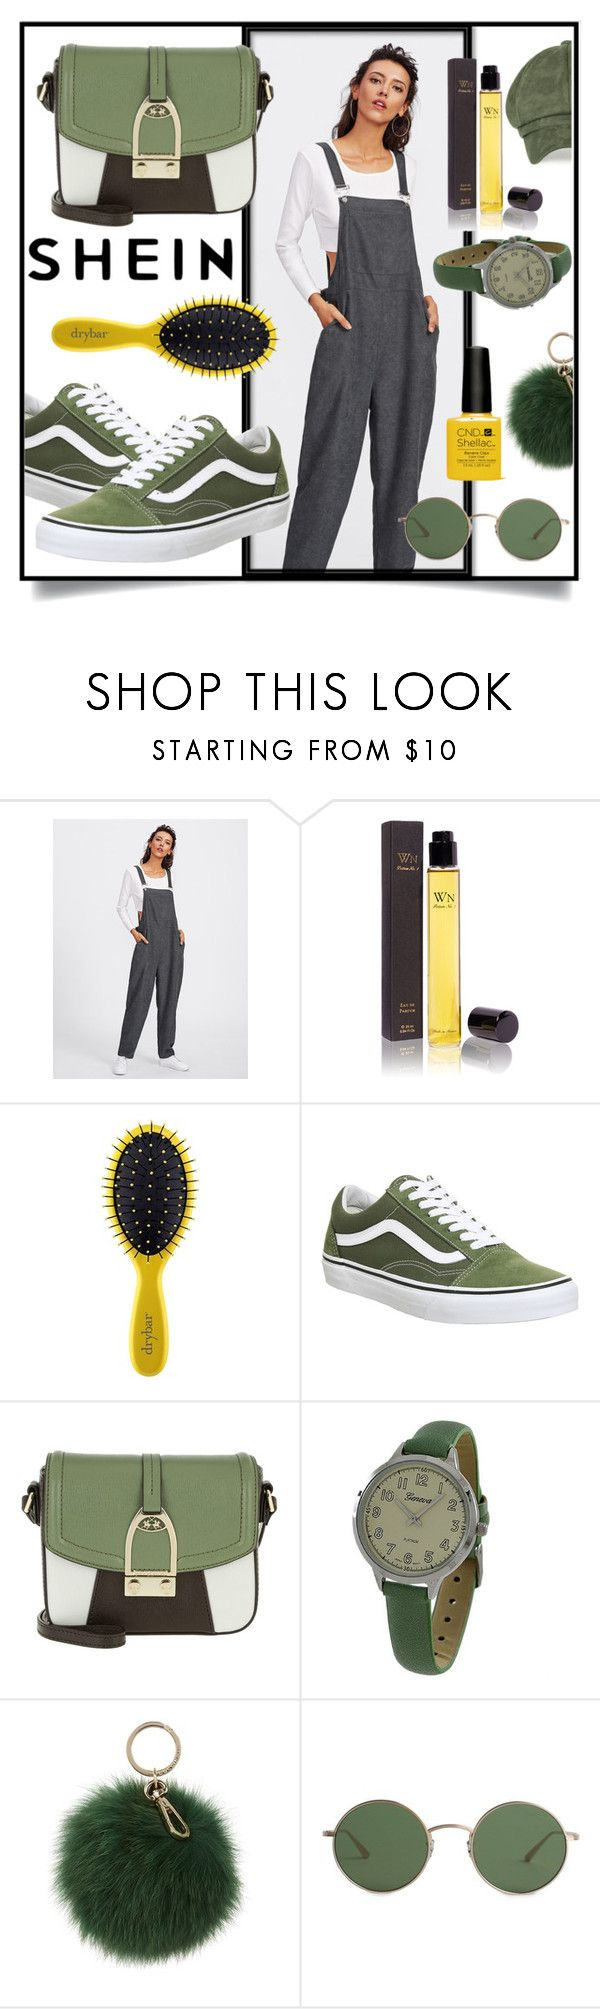 """SheIn Bib Pocket Front Harem Overalls"" by branqa on Polyvore featuring Wendy Nichol, Drybar, Vans, LA MARTINA, Geneva, Coccinelle, The Row, contest, Sheinside and casualoutfit"